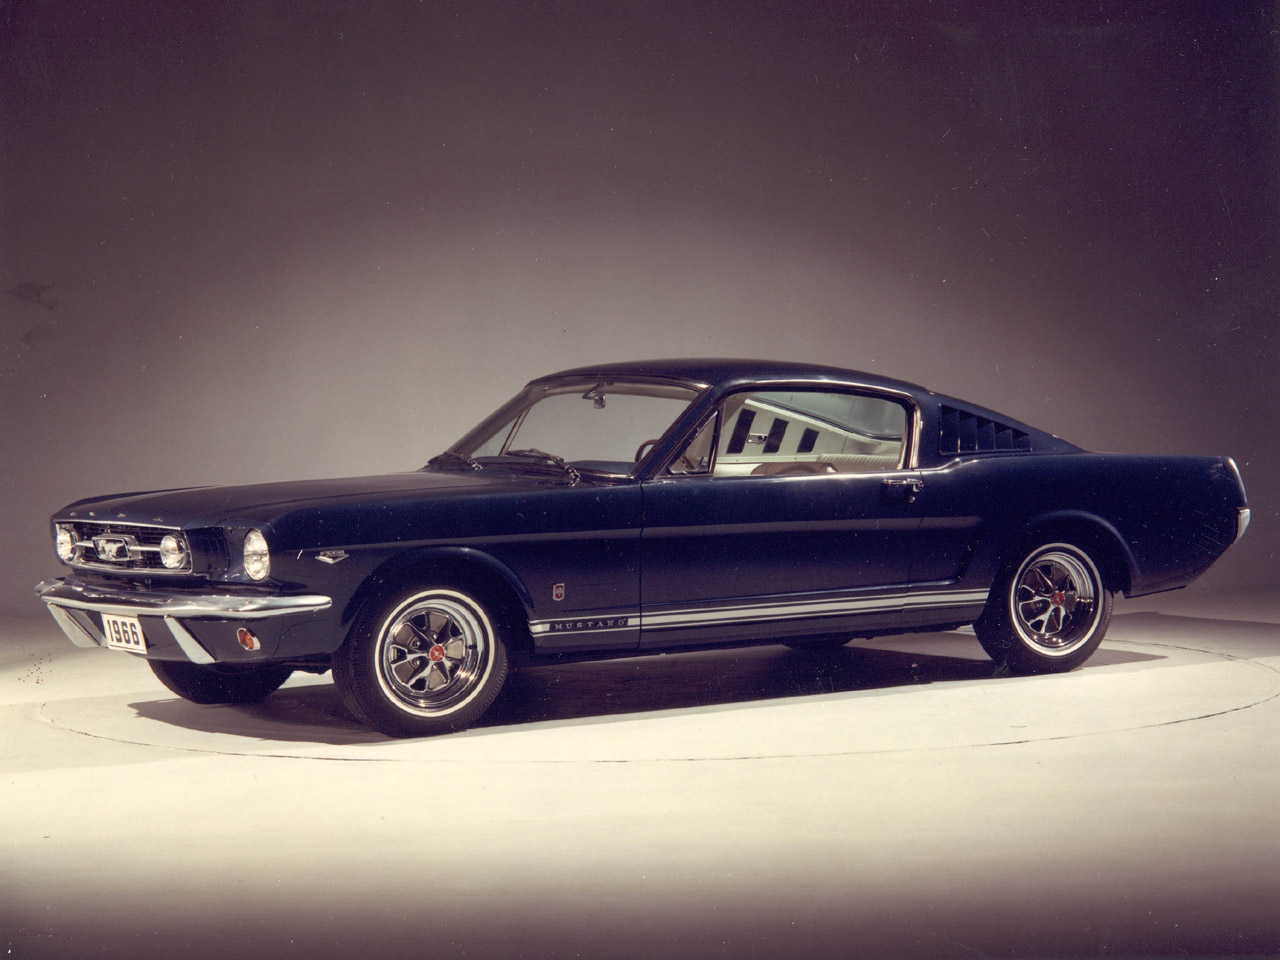 159dpi: 1966 Ford Mustang